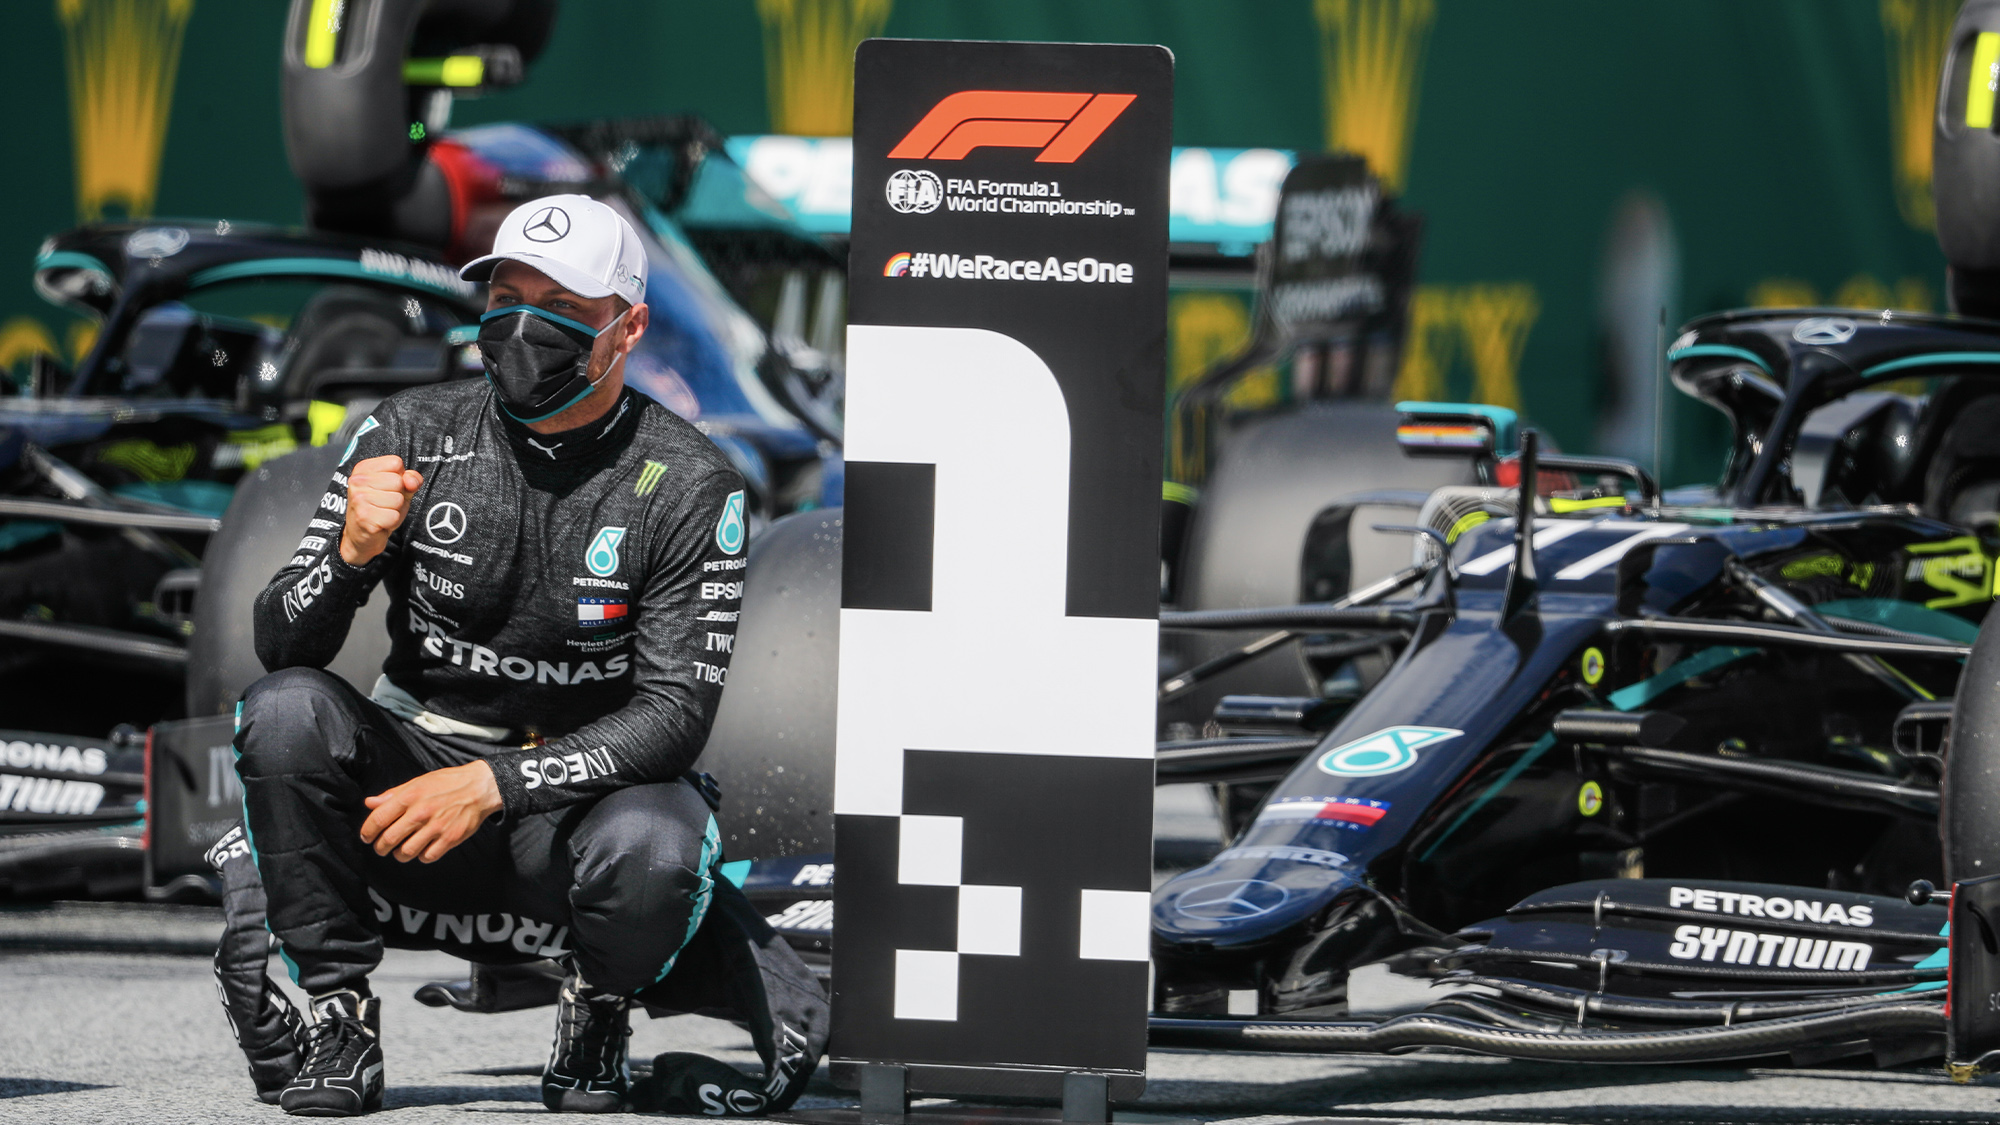 2020 Austrian Grand Prix qualifying: Bottas on pole as Ferrari goes backwards